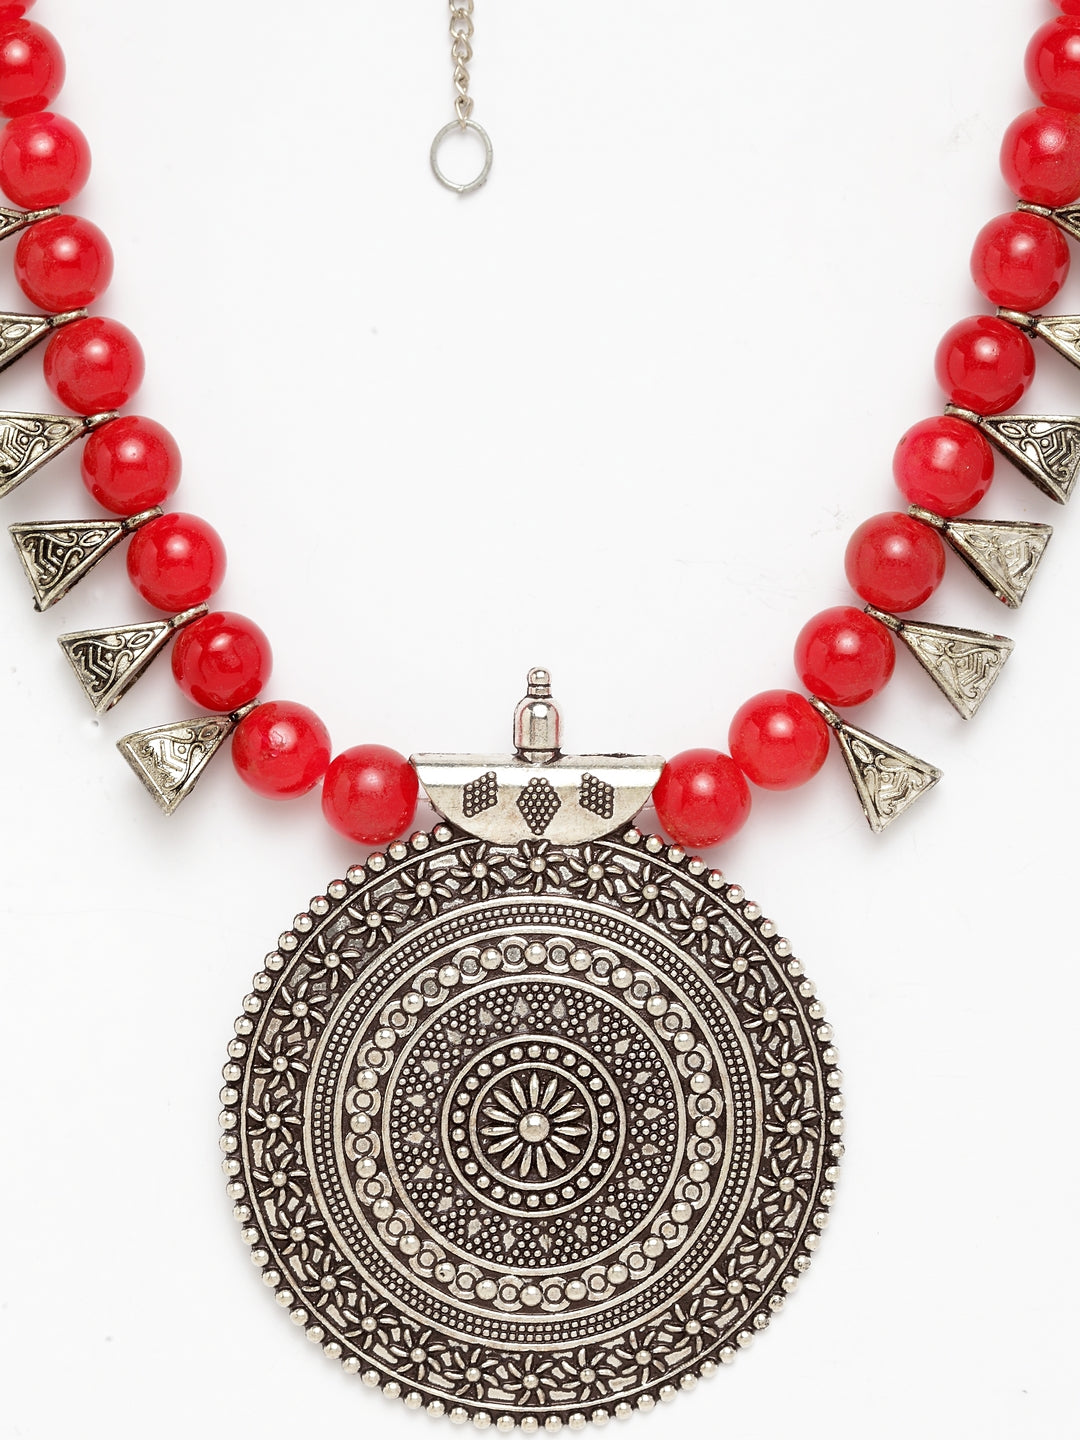 Silver Plated Bold Fashion Necklace-ART MANNIA1-Necklace